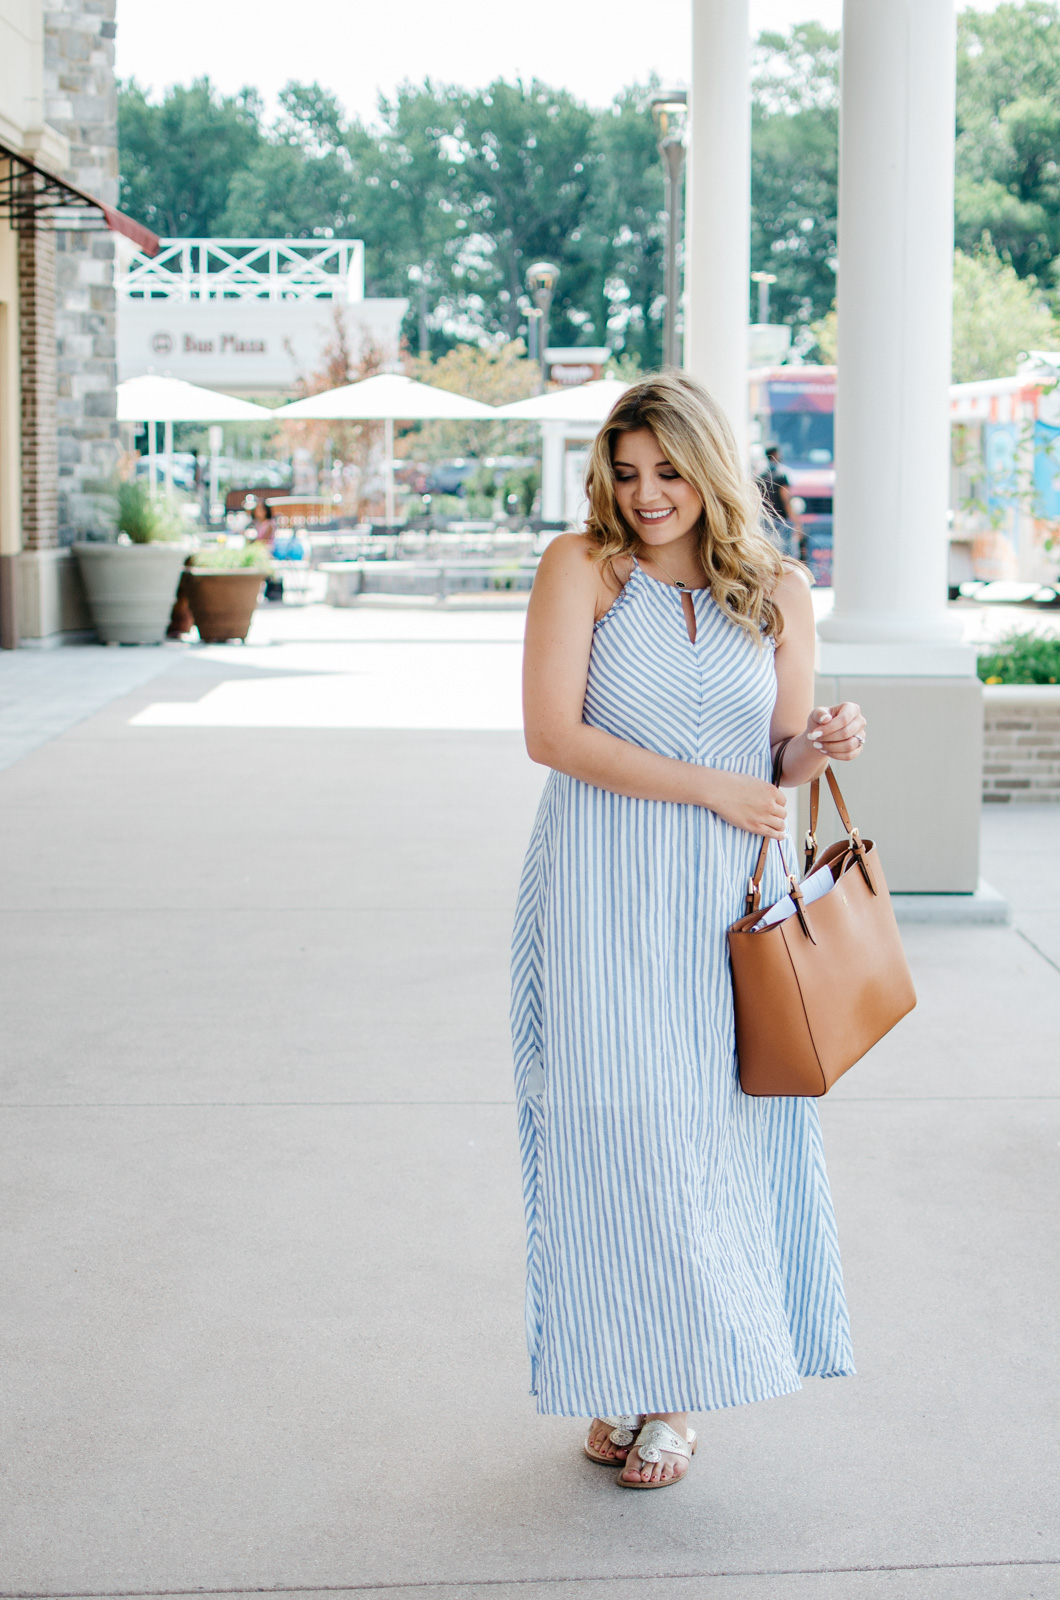 seersucker maxi dress - classic summer outfit | For more cute Summer outfit ideas, go to bylaurenm.com!